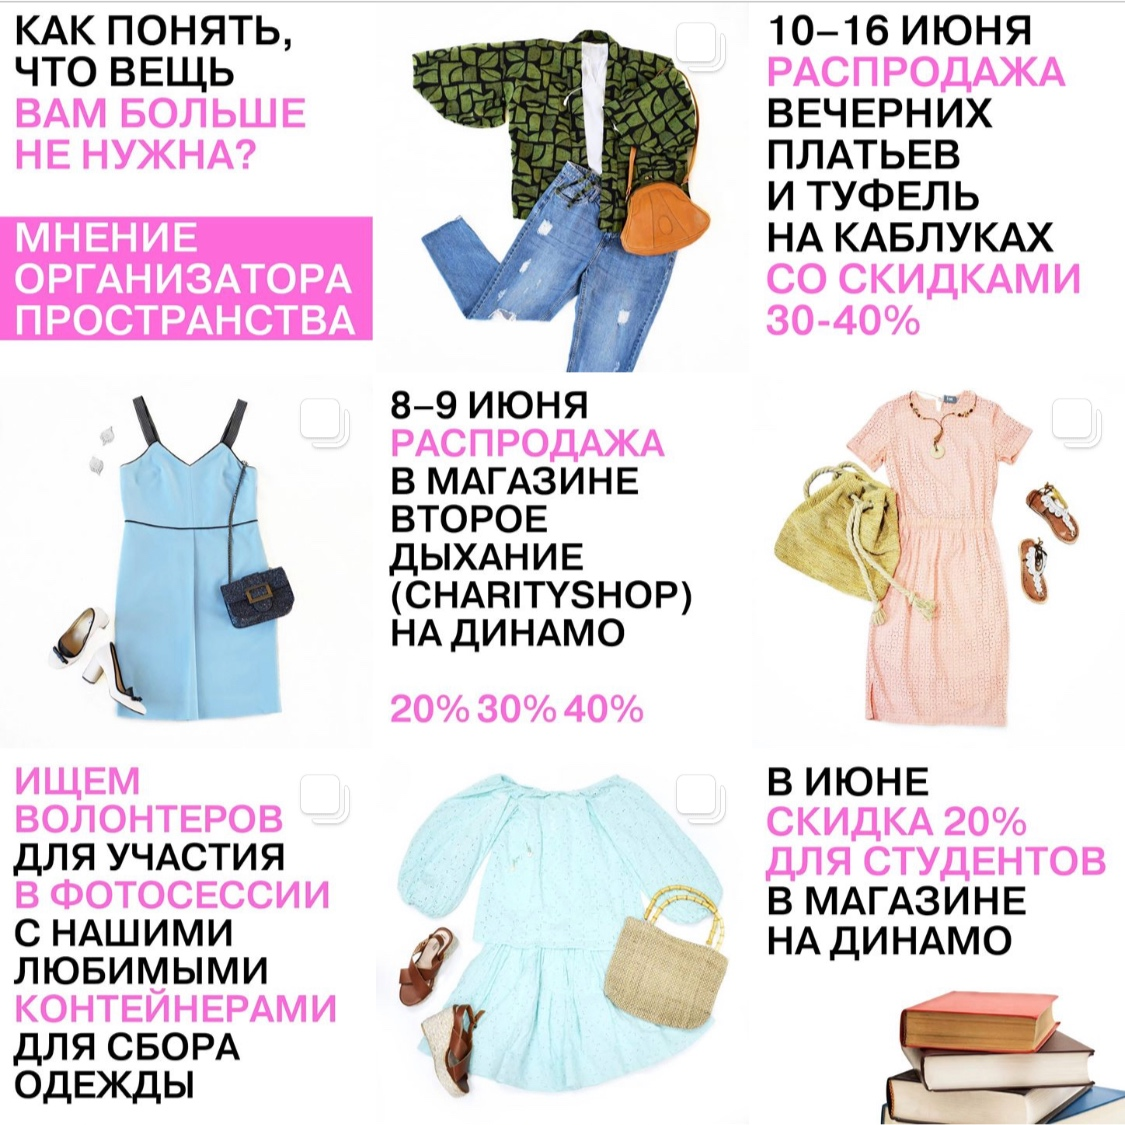 Charity Shop Msk - From all of the above this place is the kindest. People behind Charity Shop Msk were the first ones in Russia to raise awareness about the destructive side of the fashion industry, and how some of us switch clothes everyday while others literally have nothing to wear. Charity Shop Msk collaborates with Fashion Revolution Russia, so if you need to free some space in your suitcase, bring unwanted clothes to one of their four shops. All earnings they donate.